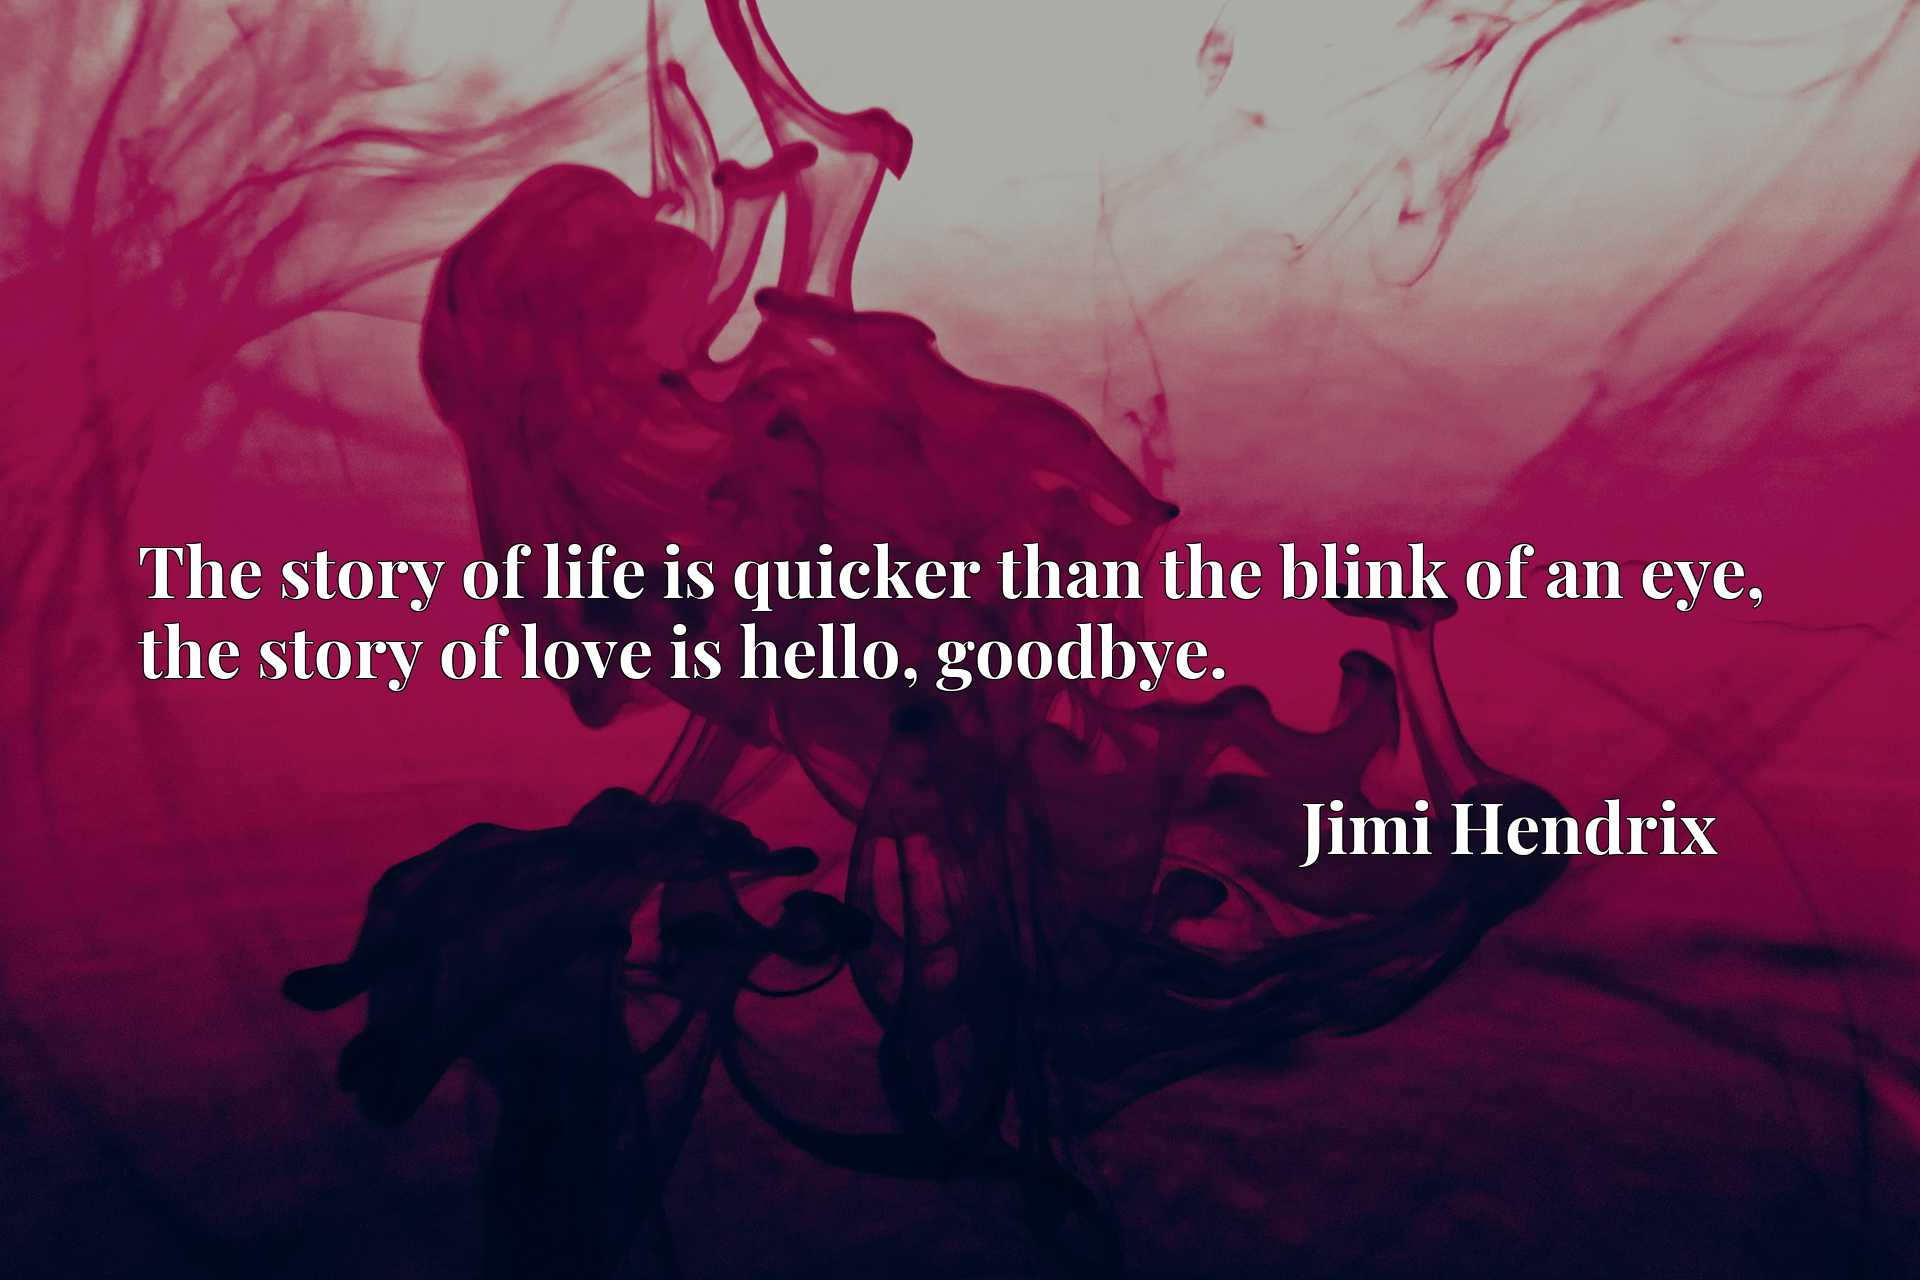 Quote Picture :The story of life is quicker than the blink of an eye, the story of love is hello, goodbye.